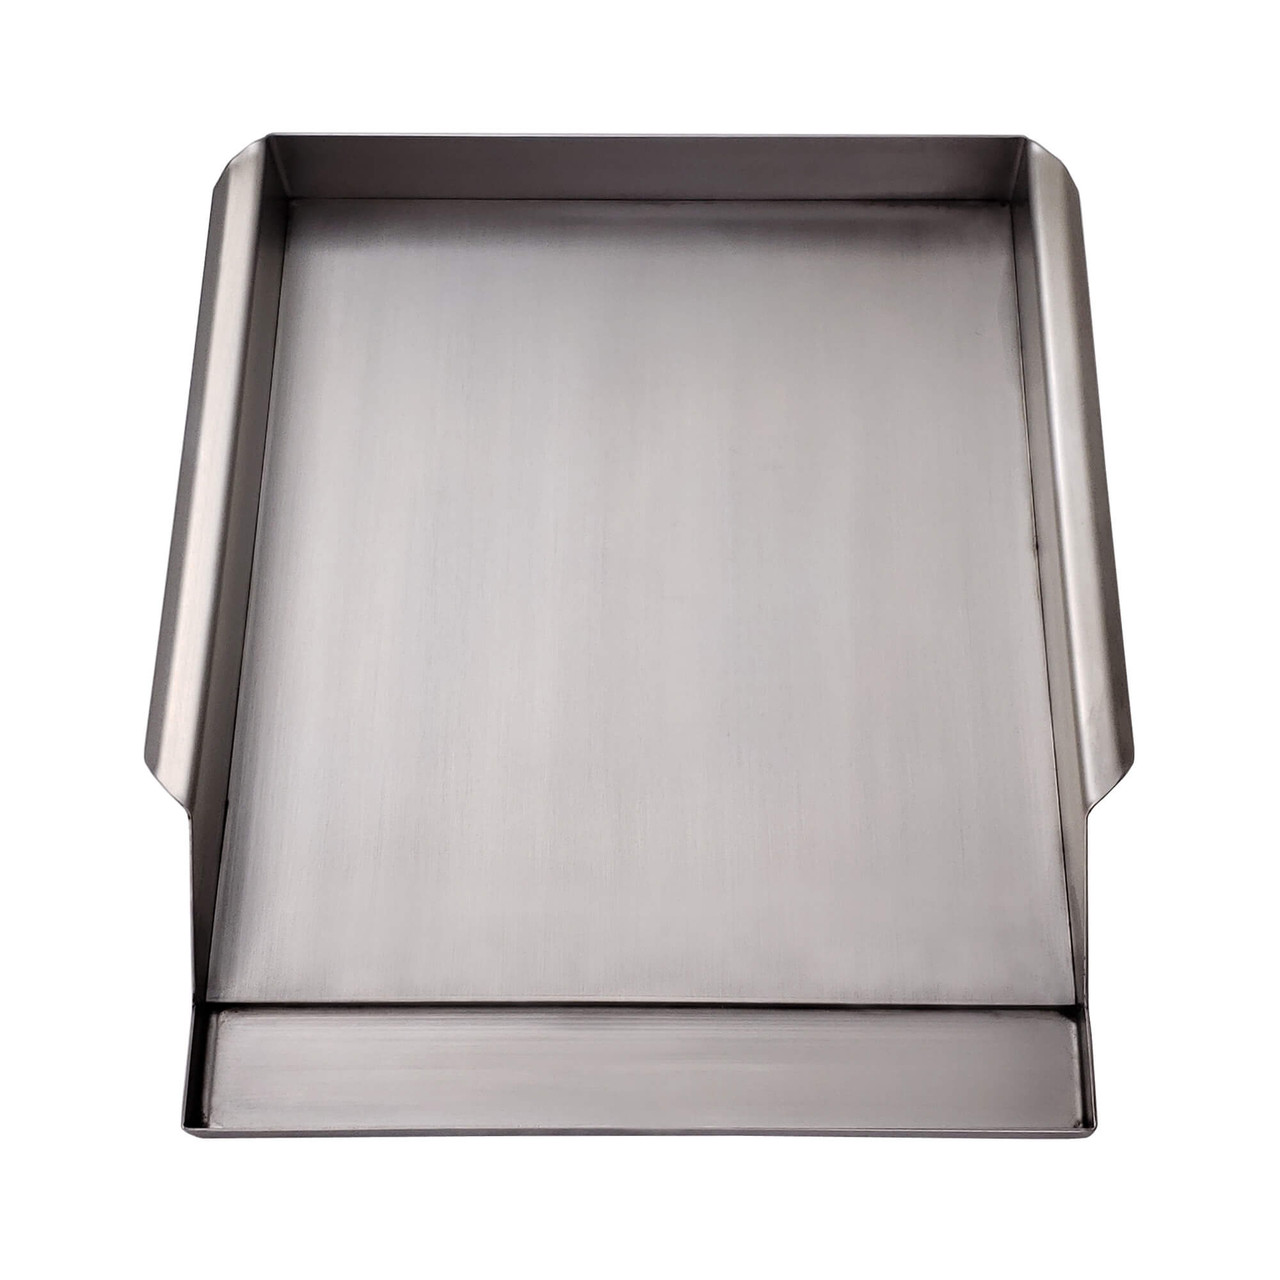 "Griddle Plate for 27"" Solaire Grills"